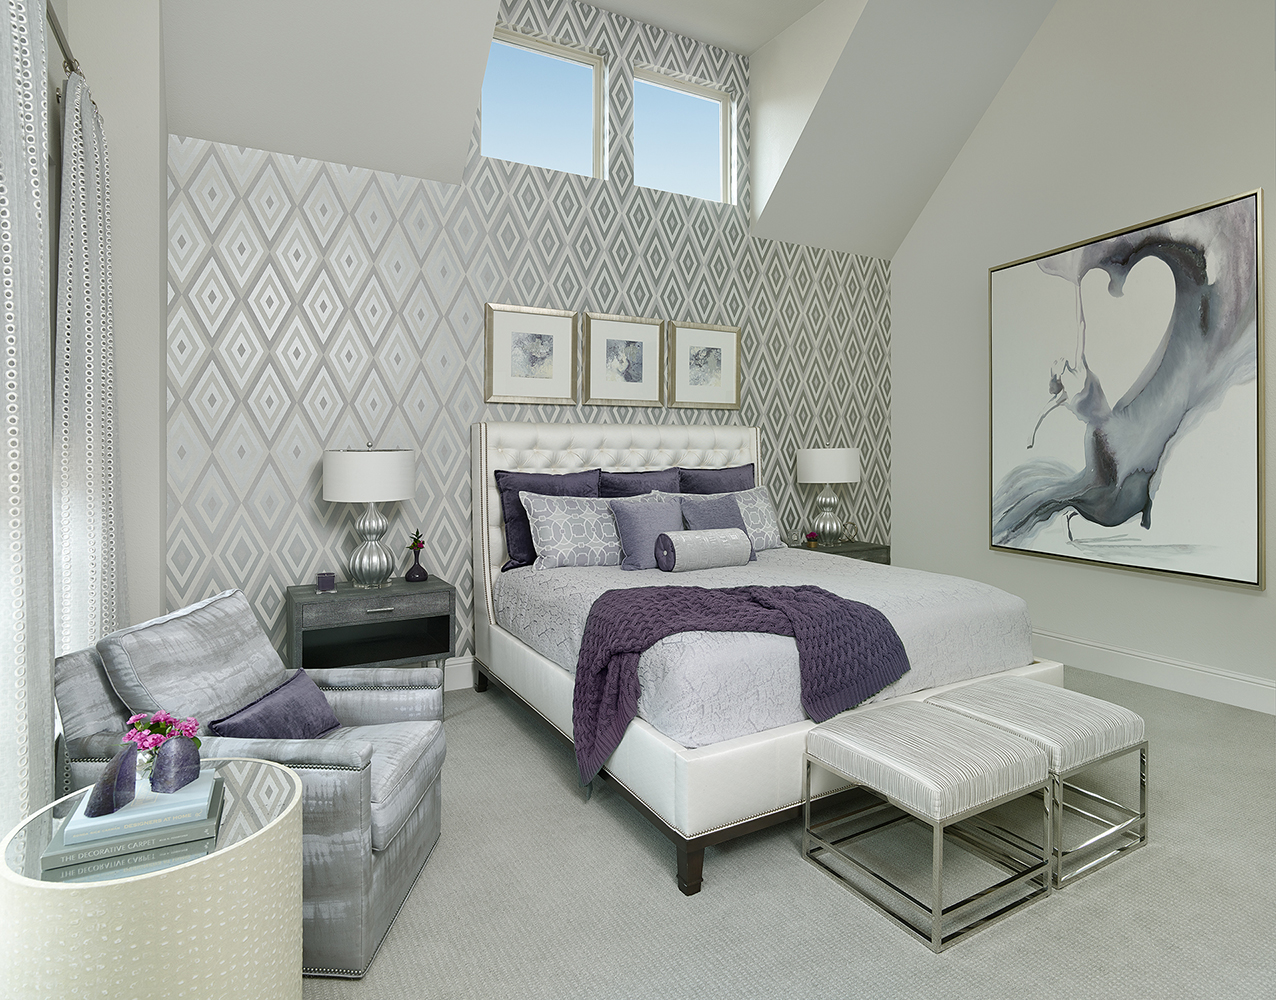 Bedroom Design Ideas: The Power of Purple | Barbara Gilbert Interiors | Interior Design Dallas